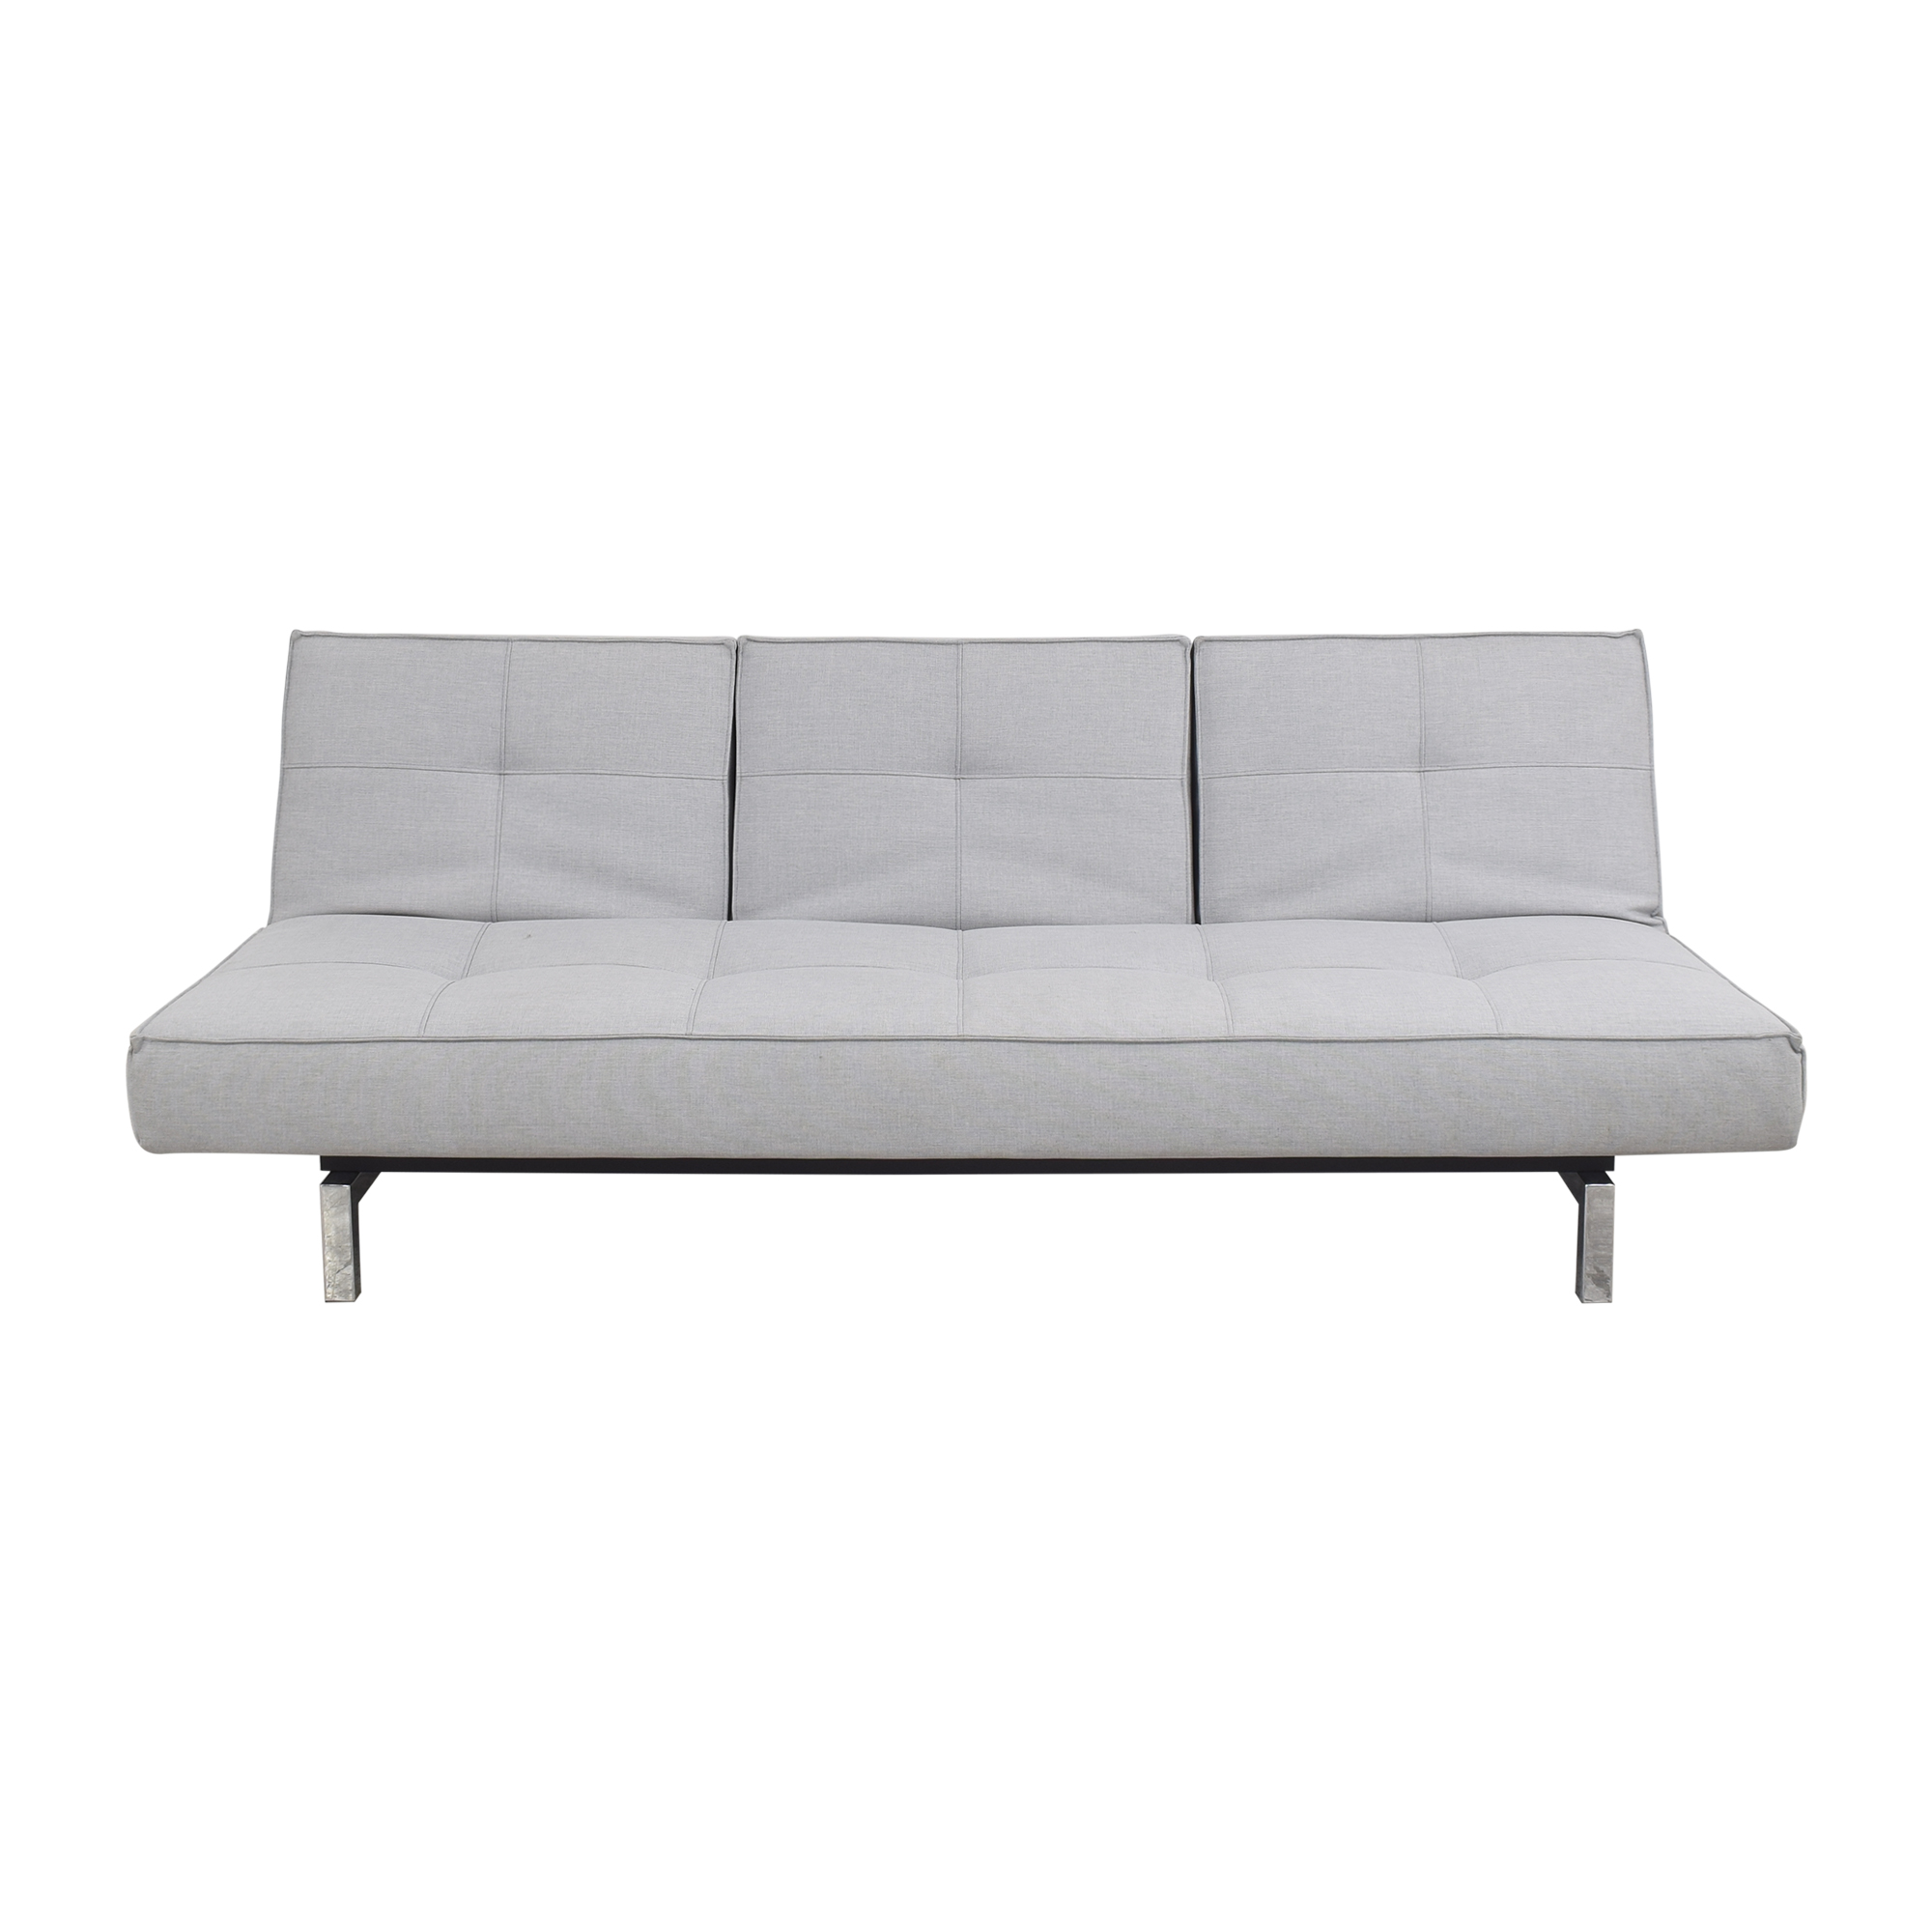 Innovation Living Innovation Living Convertible Sofa Bed dimensions